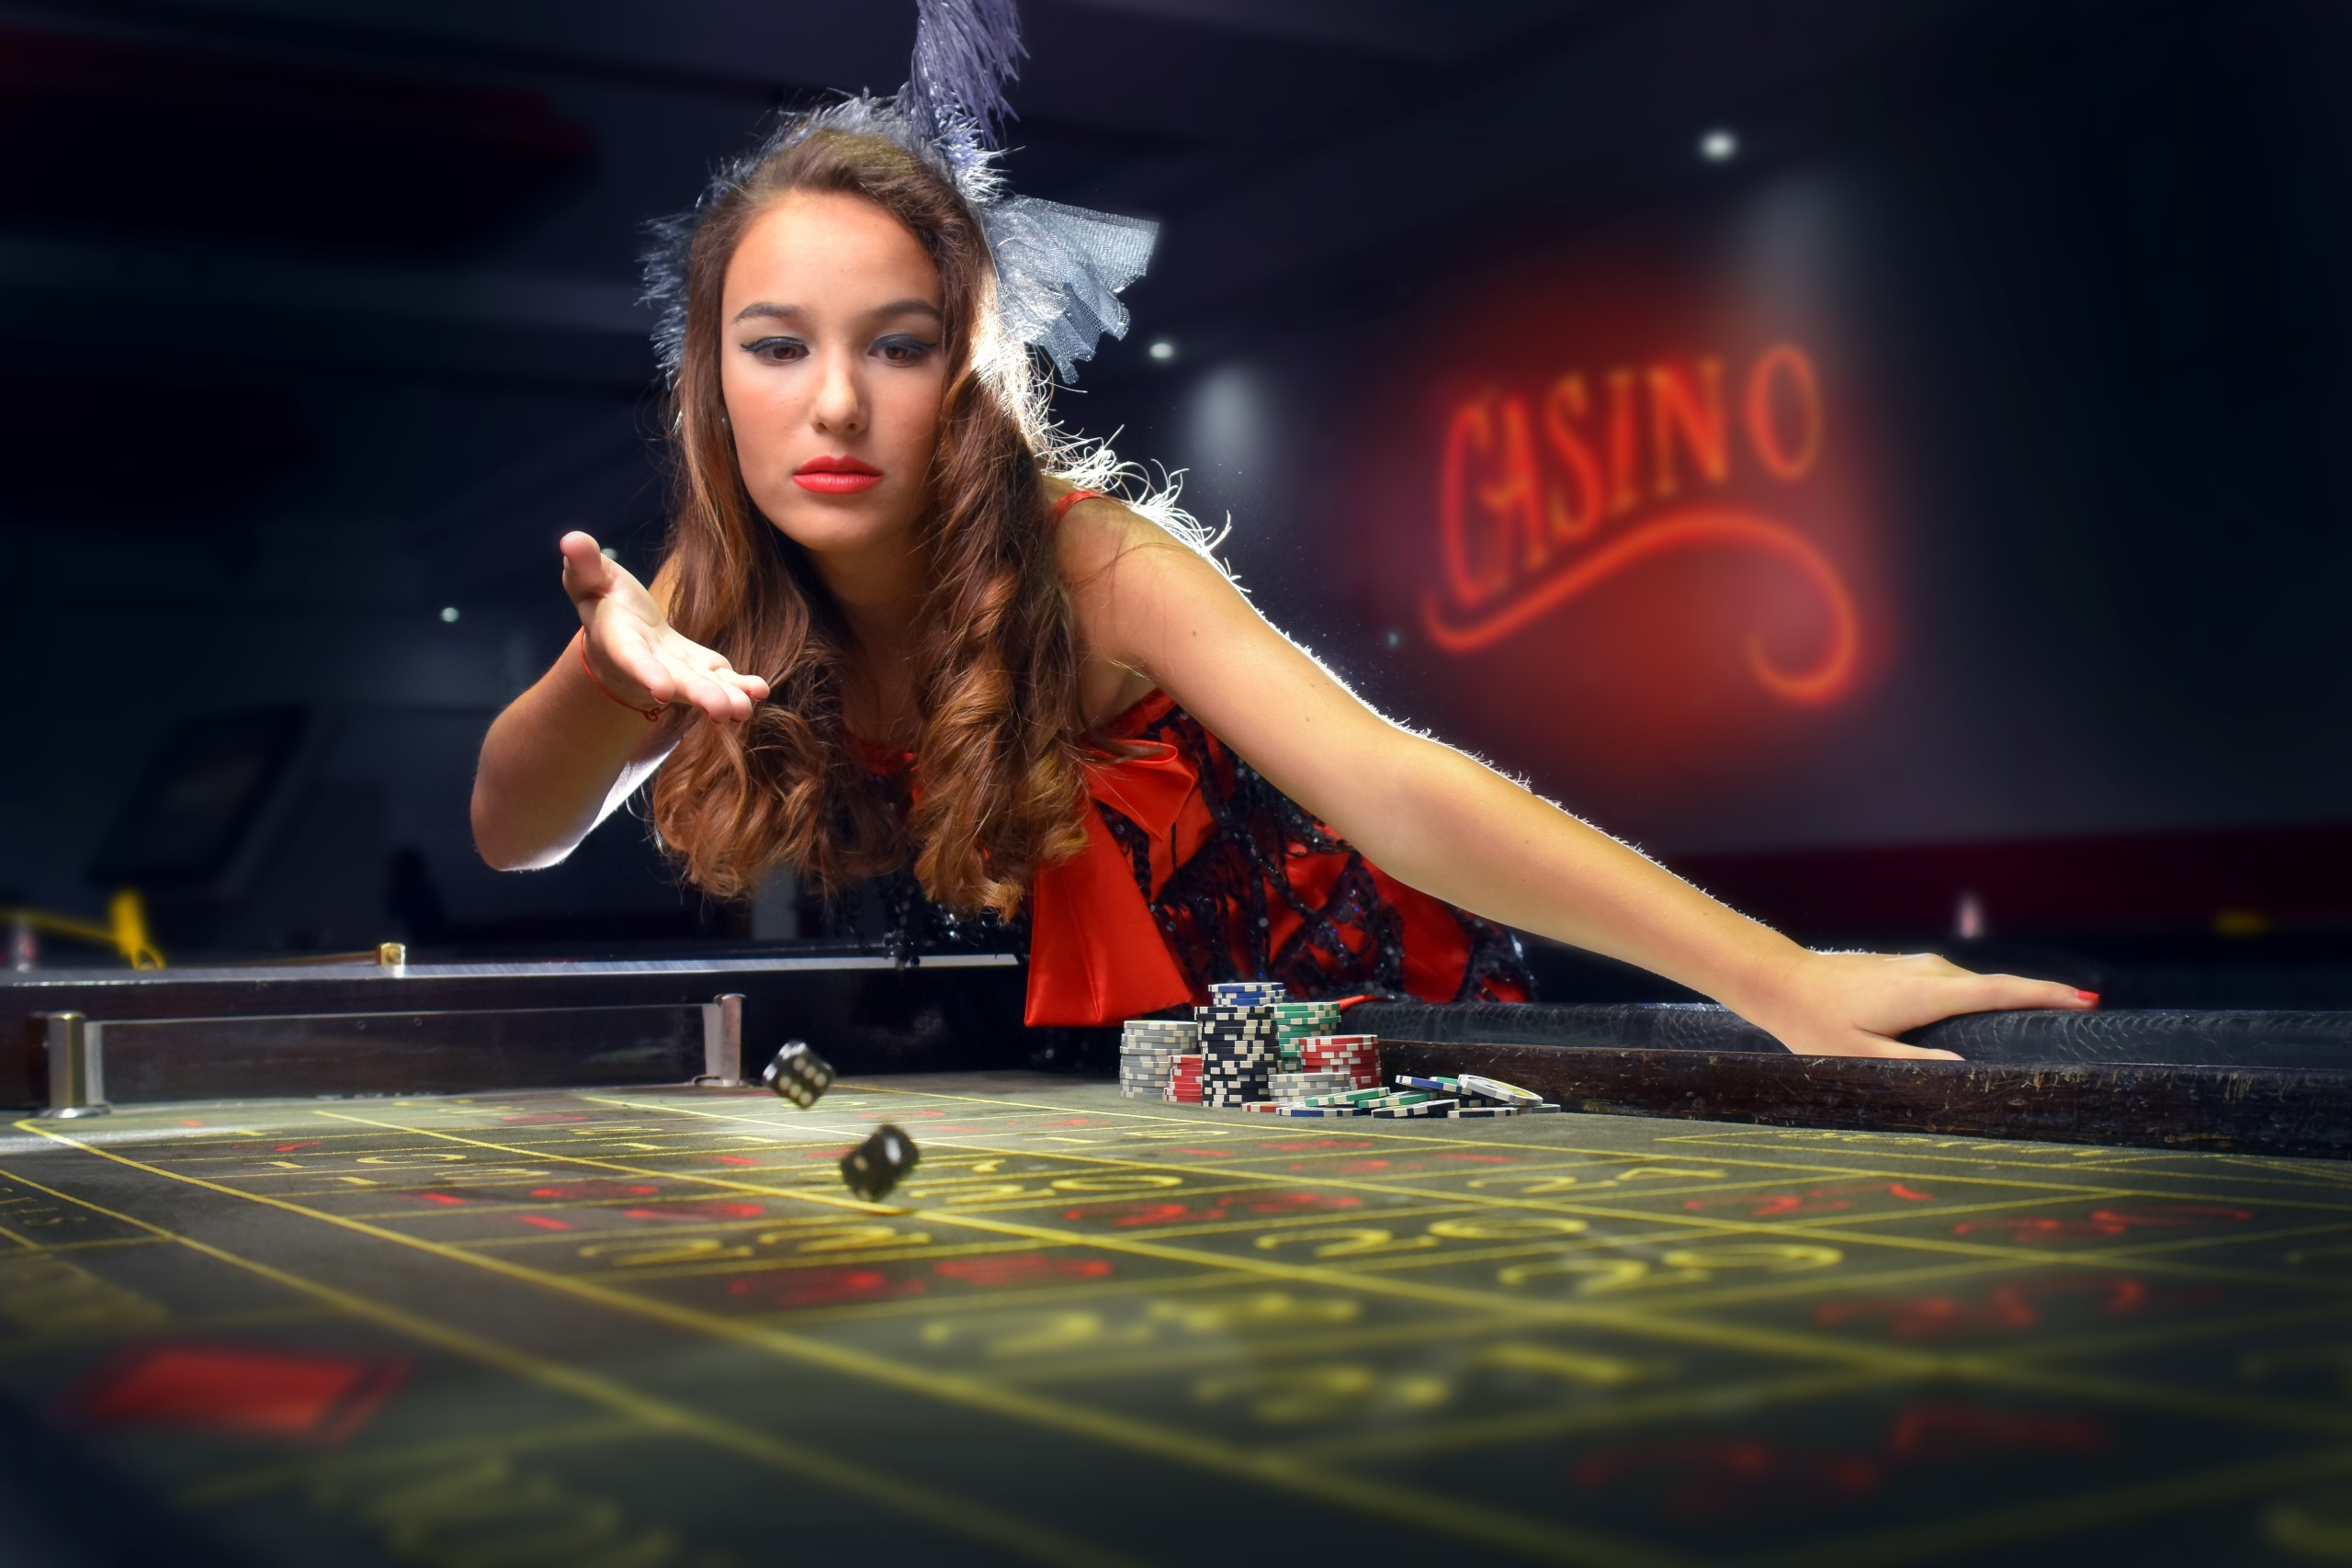 How To Save Money With Online Casino?